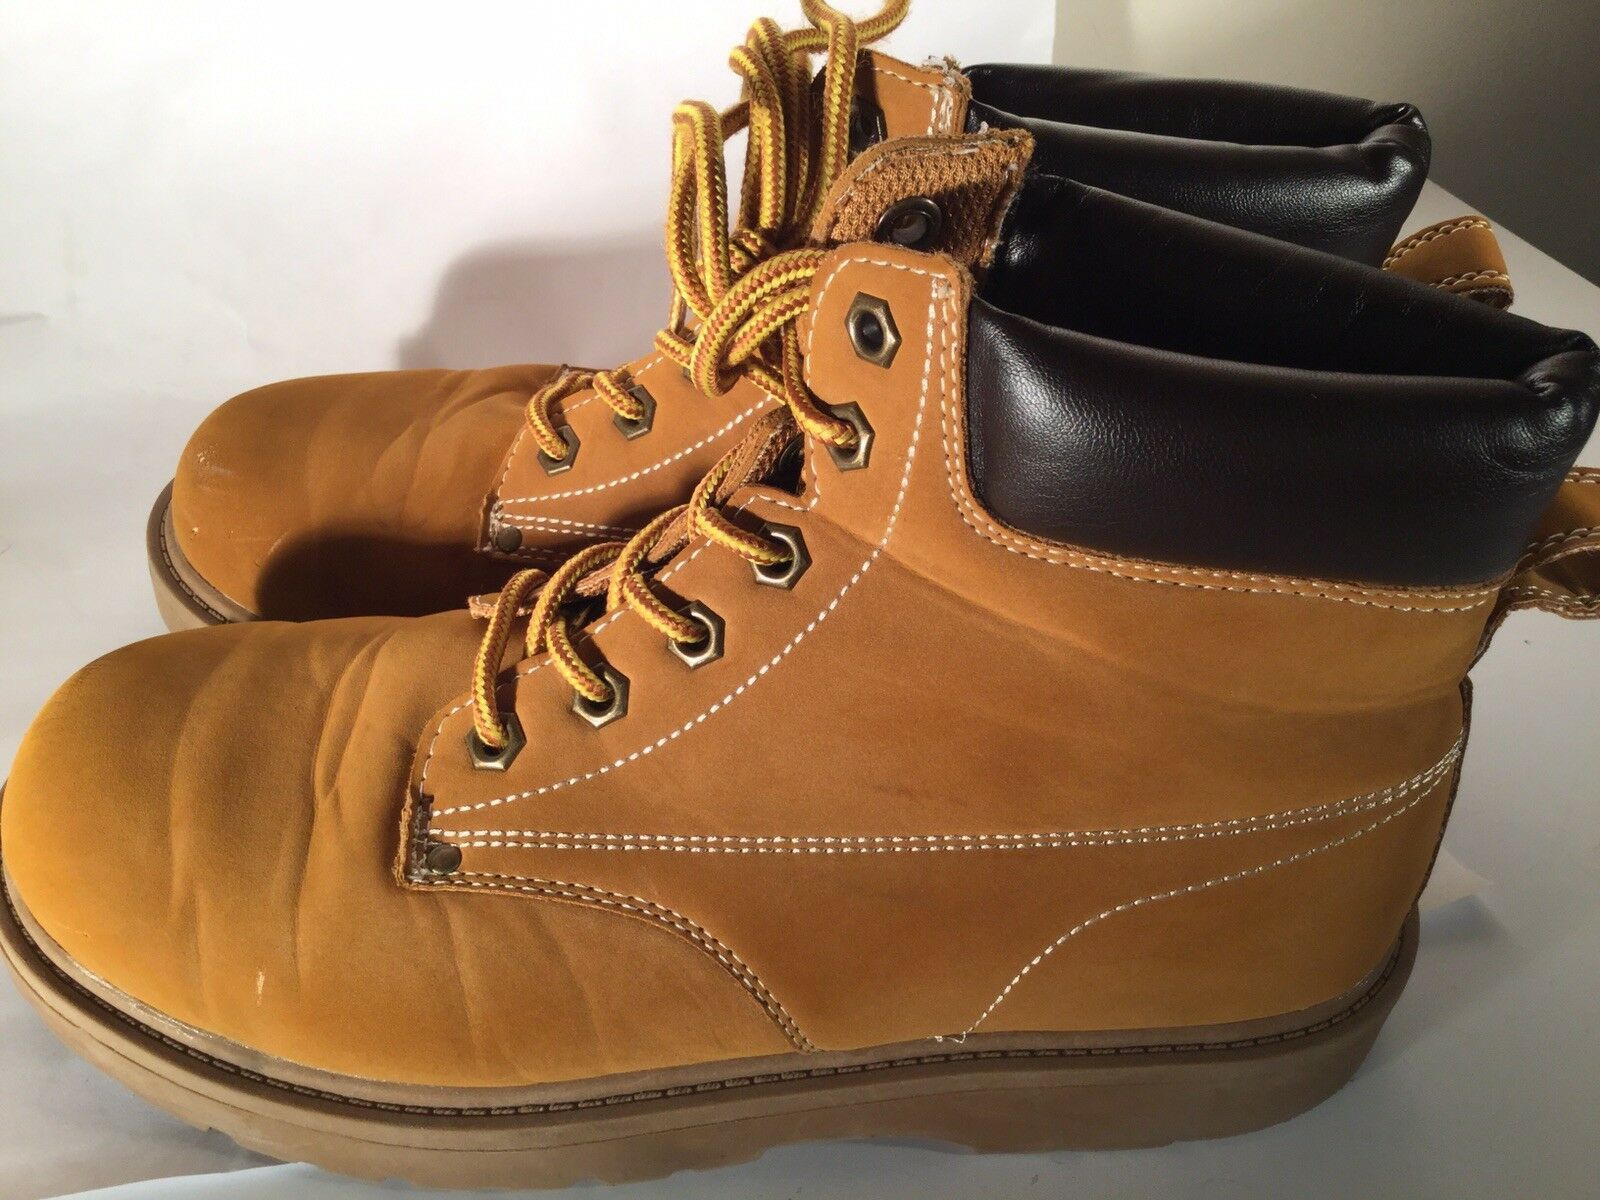 Men's Boots Size 8.5 Work 57147 Occupational Yellow Target 17730 57147 Work f6885c